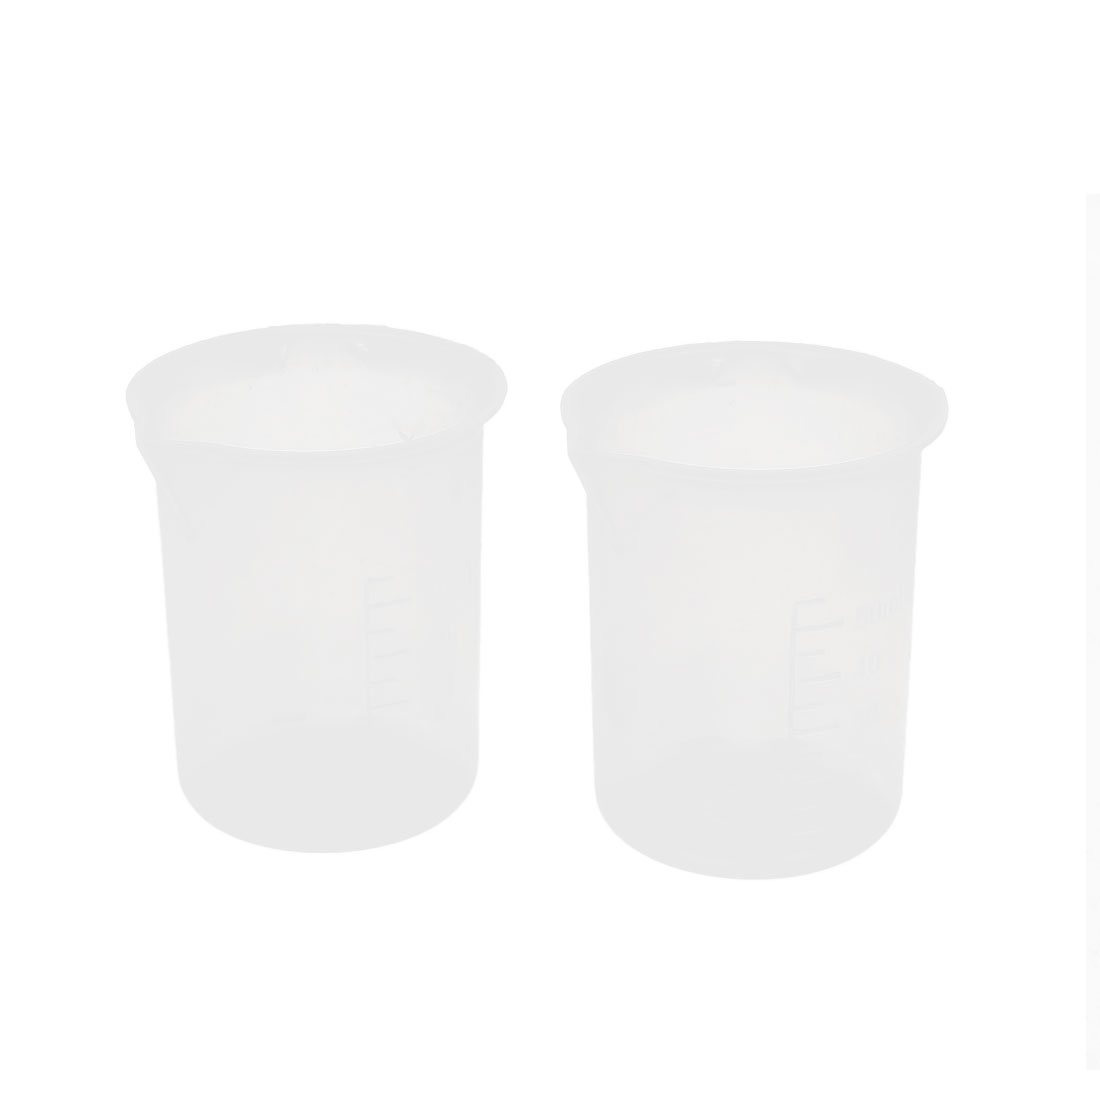 2pcs 50mL 1.7oZ Capacity Plastic Graduated Liquid Measuring Beaker Testing Cup Mug for Lab